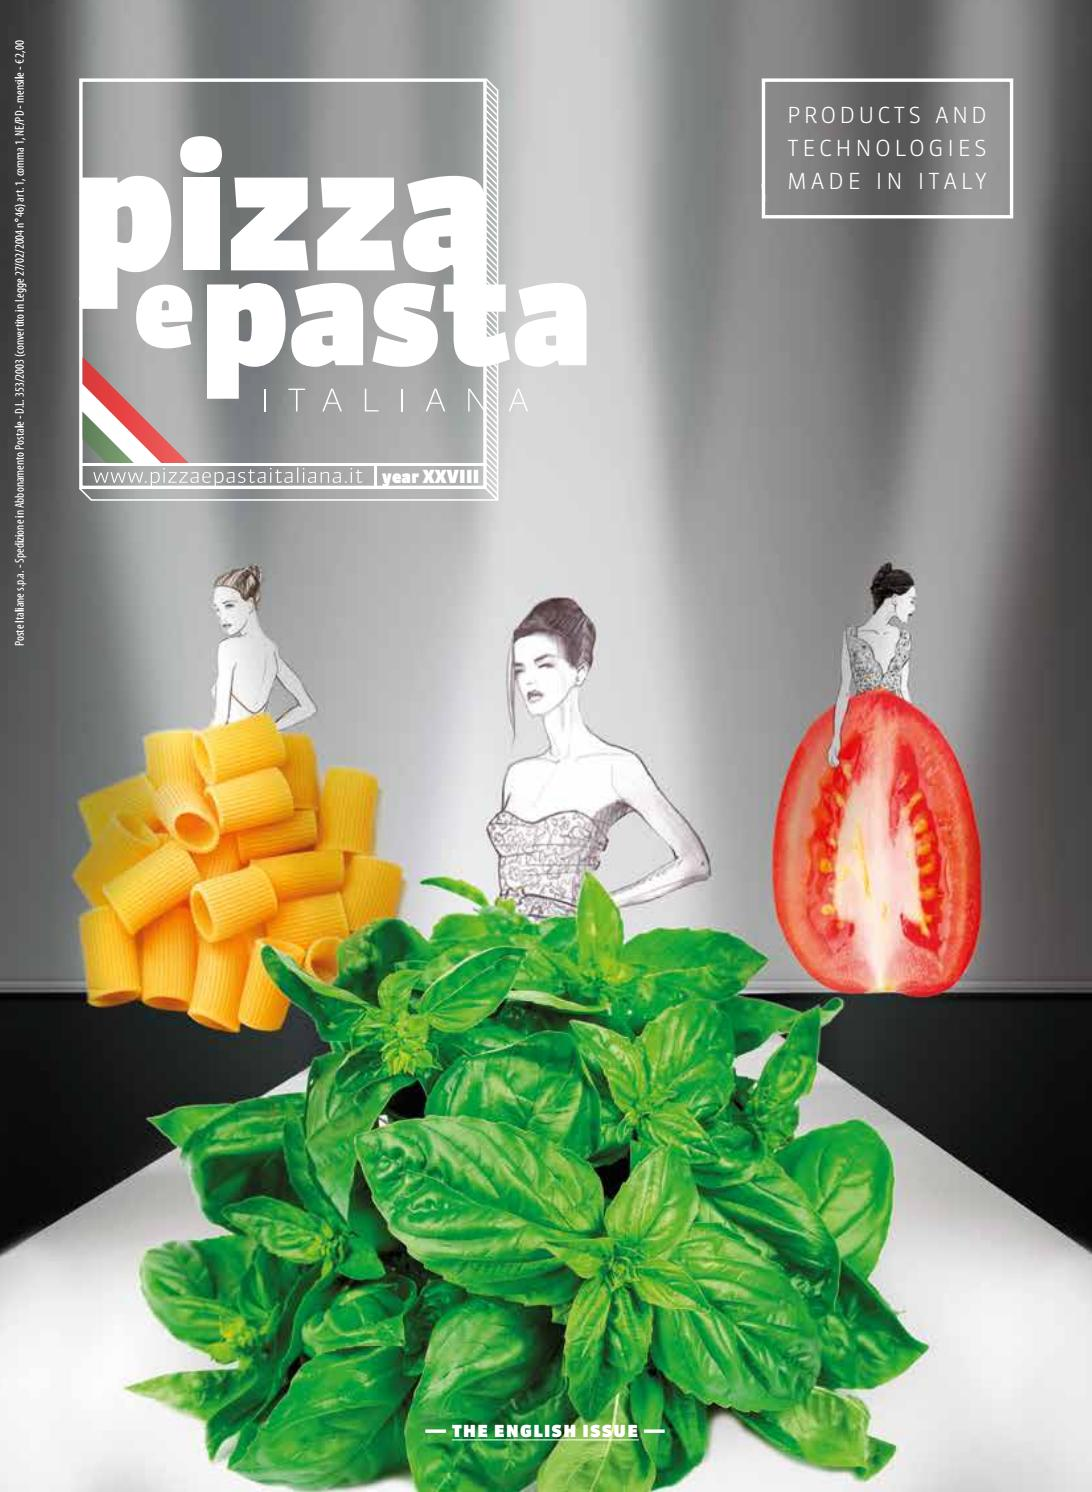 Pizza E Pasta Italiana English Version By June 2012 Electronic Components Microchips Wood Frame 120x120 Cm Issuu